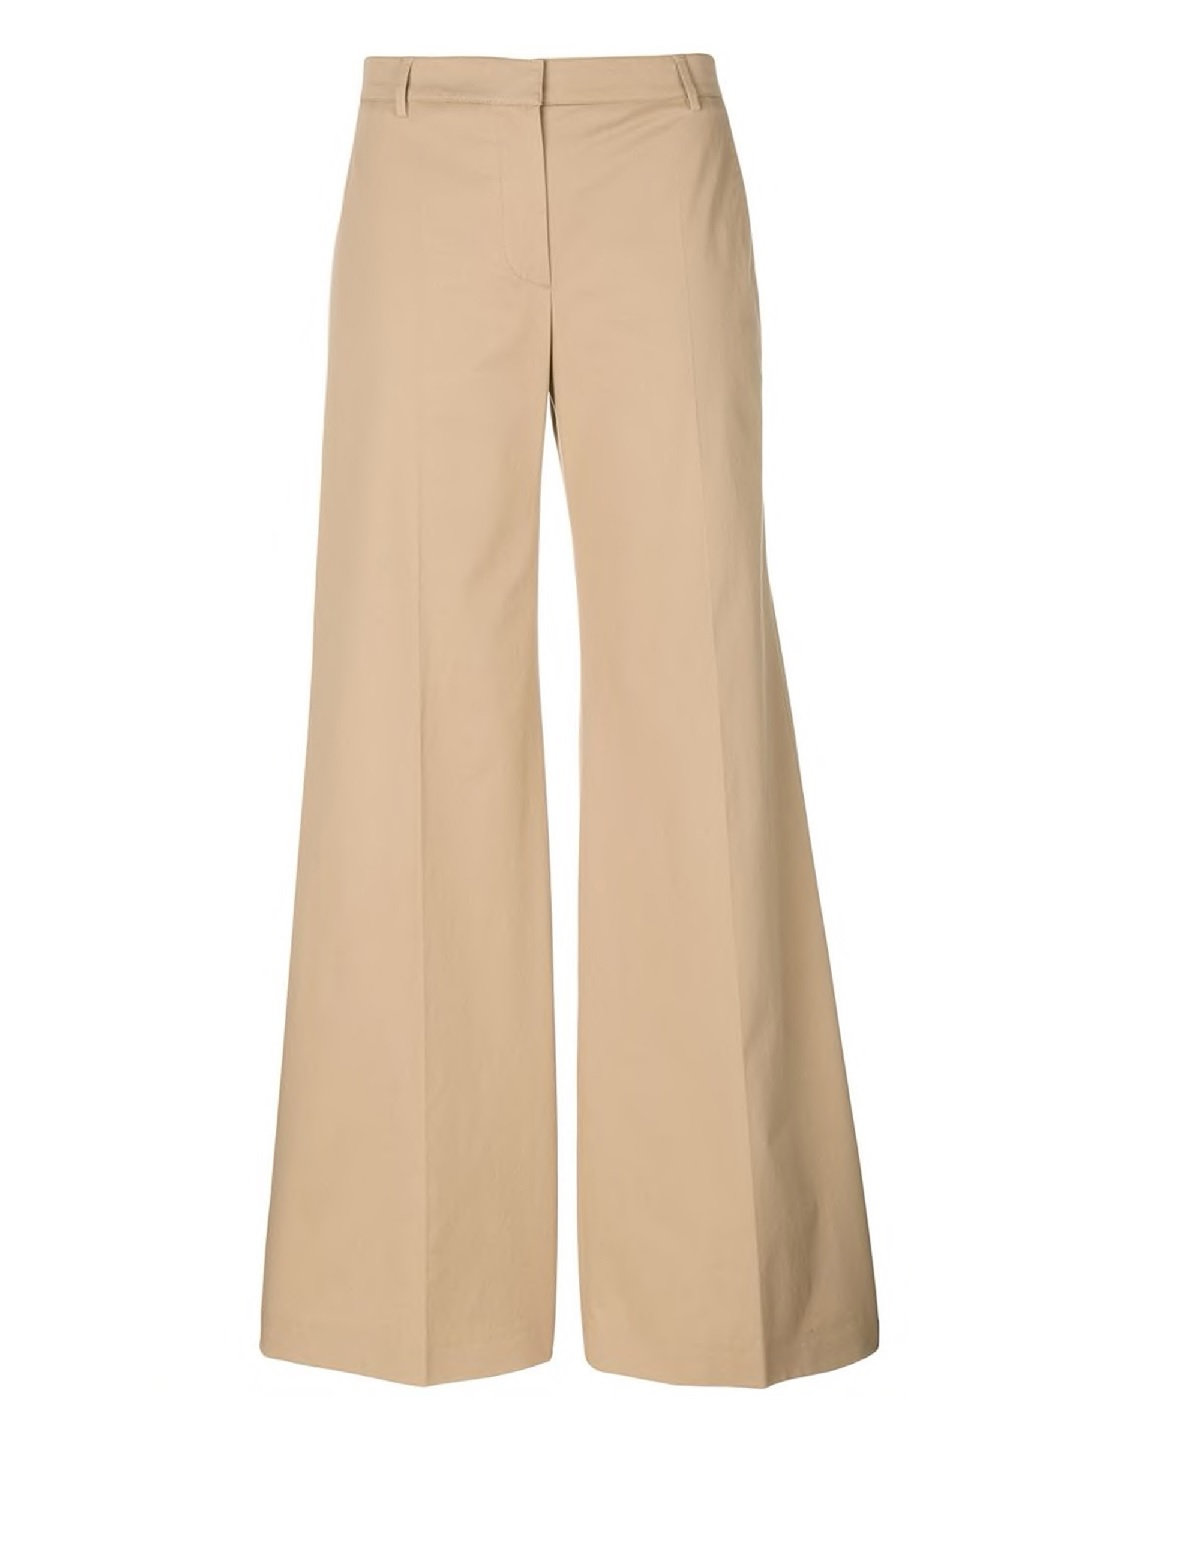 Burberry Ladies Wide Leg Trousers In Camel In Yellow